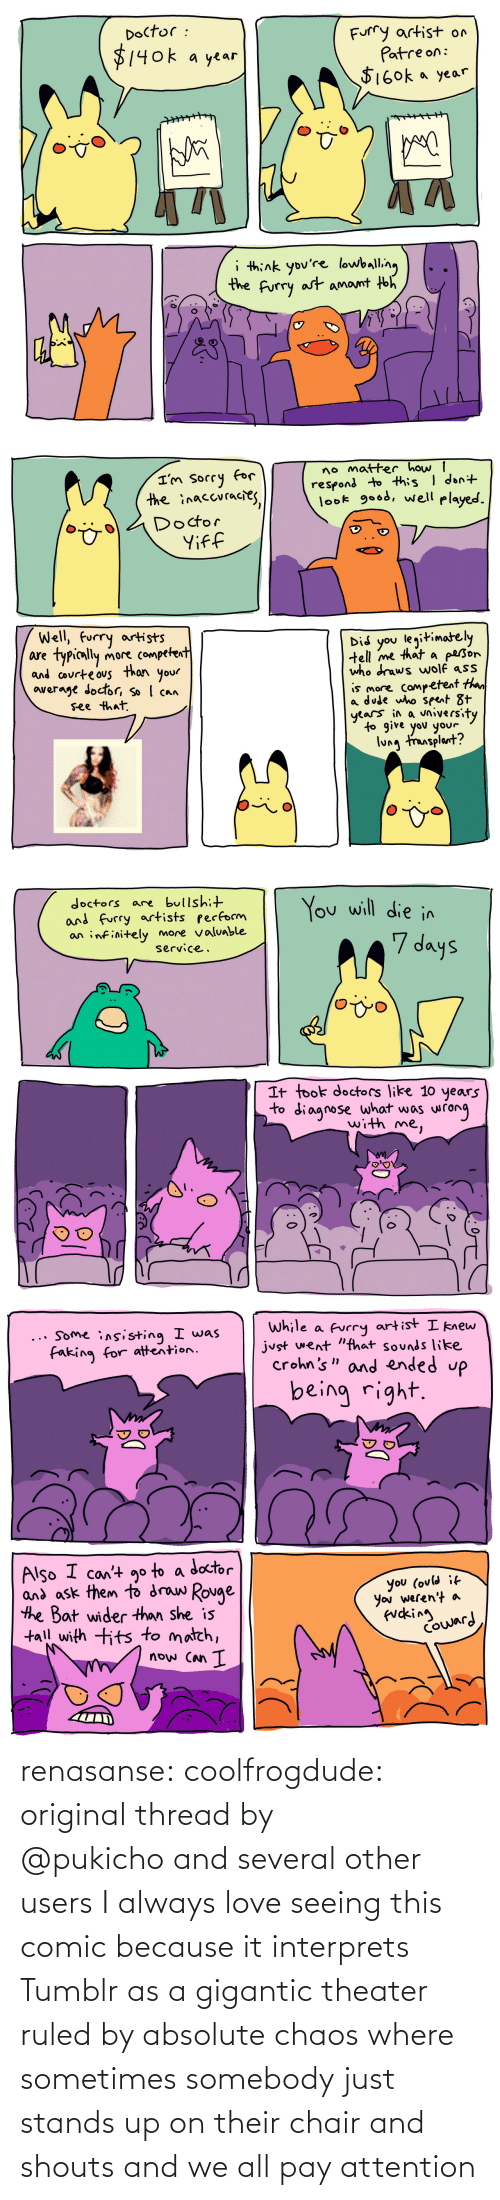 chaos: renasanse:  coolfrogdude: original thread by @pukichoand several other users I always love seeing this comic because it interprets Tumblr as a gigantic theater ruled by absolute chaos where sometimes somebody just stands up on their chair and shouts and we all pay attention